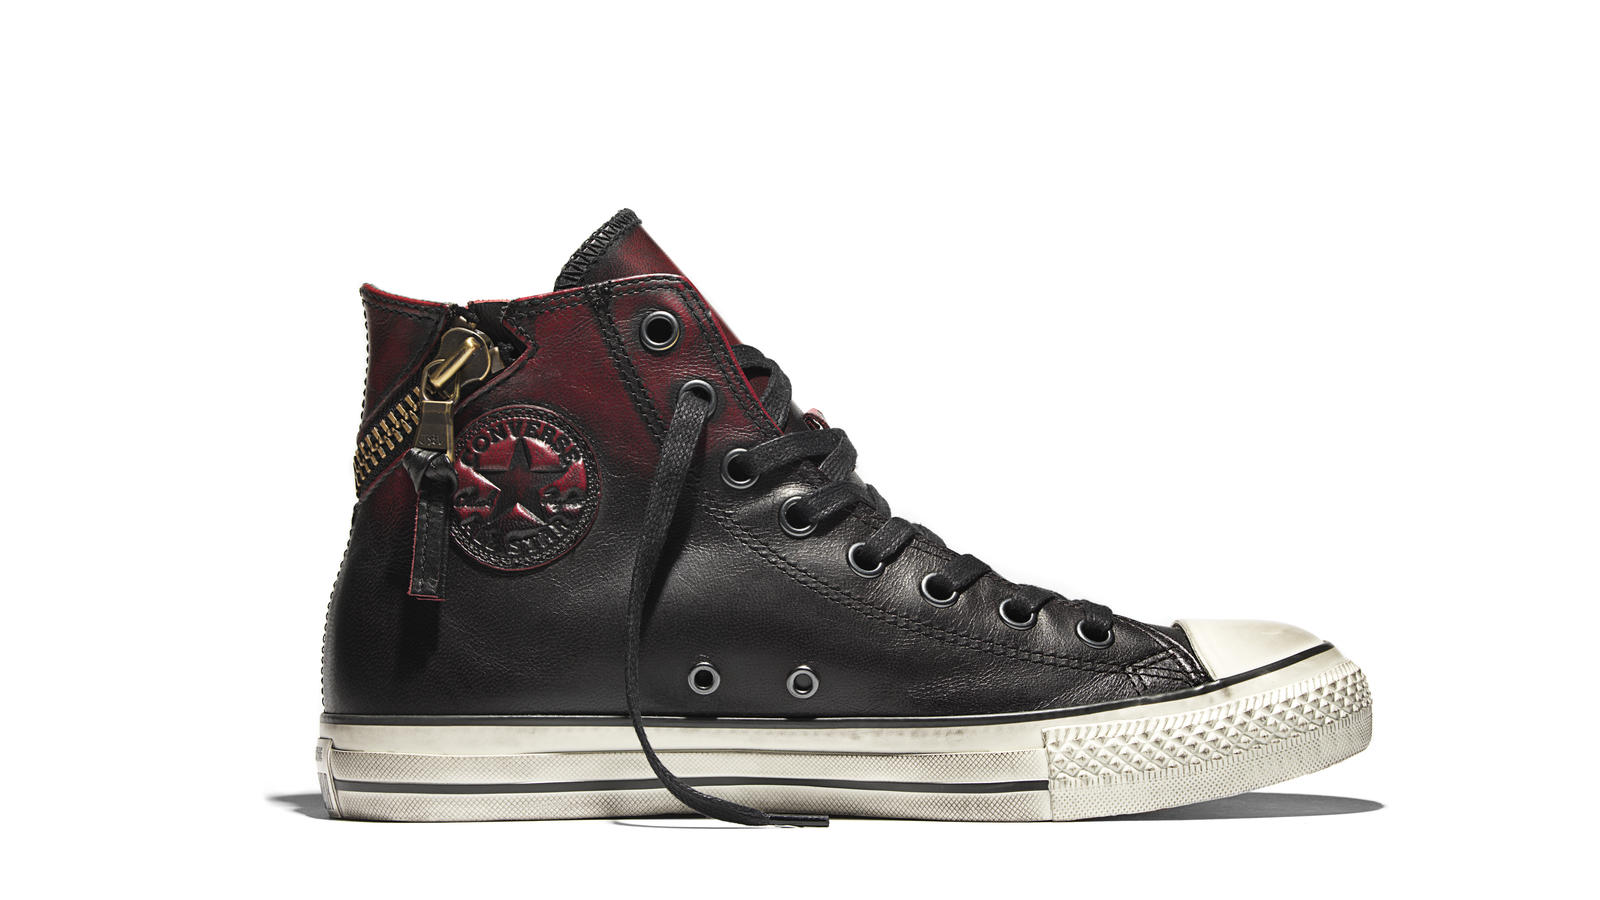 8a2d5acba832 Converse Chuck Taylor All Star John Varvatos Torando Zip Leather Original